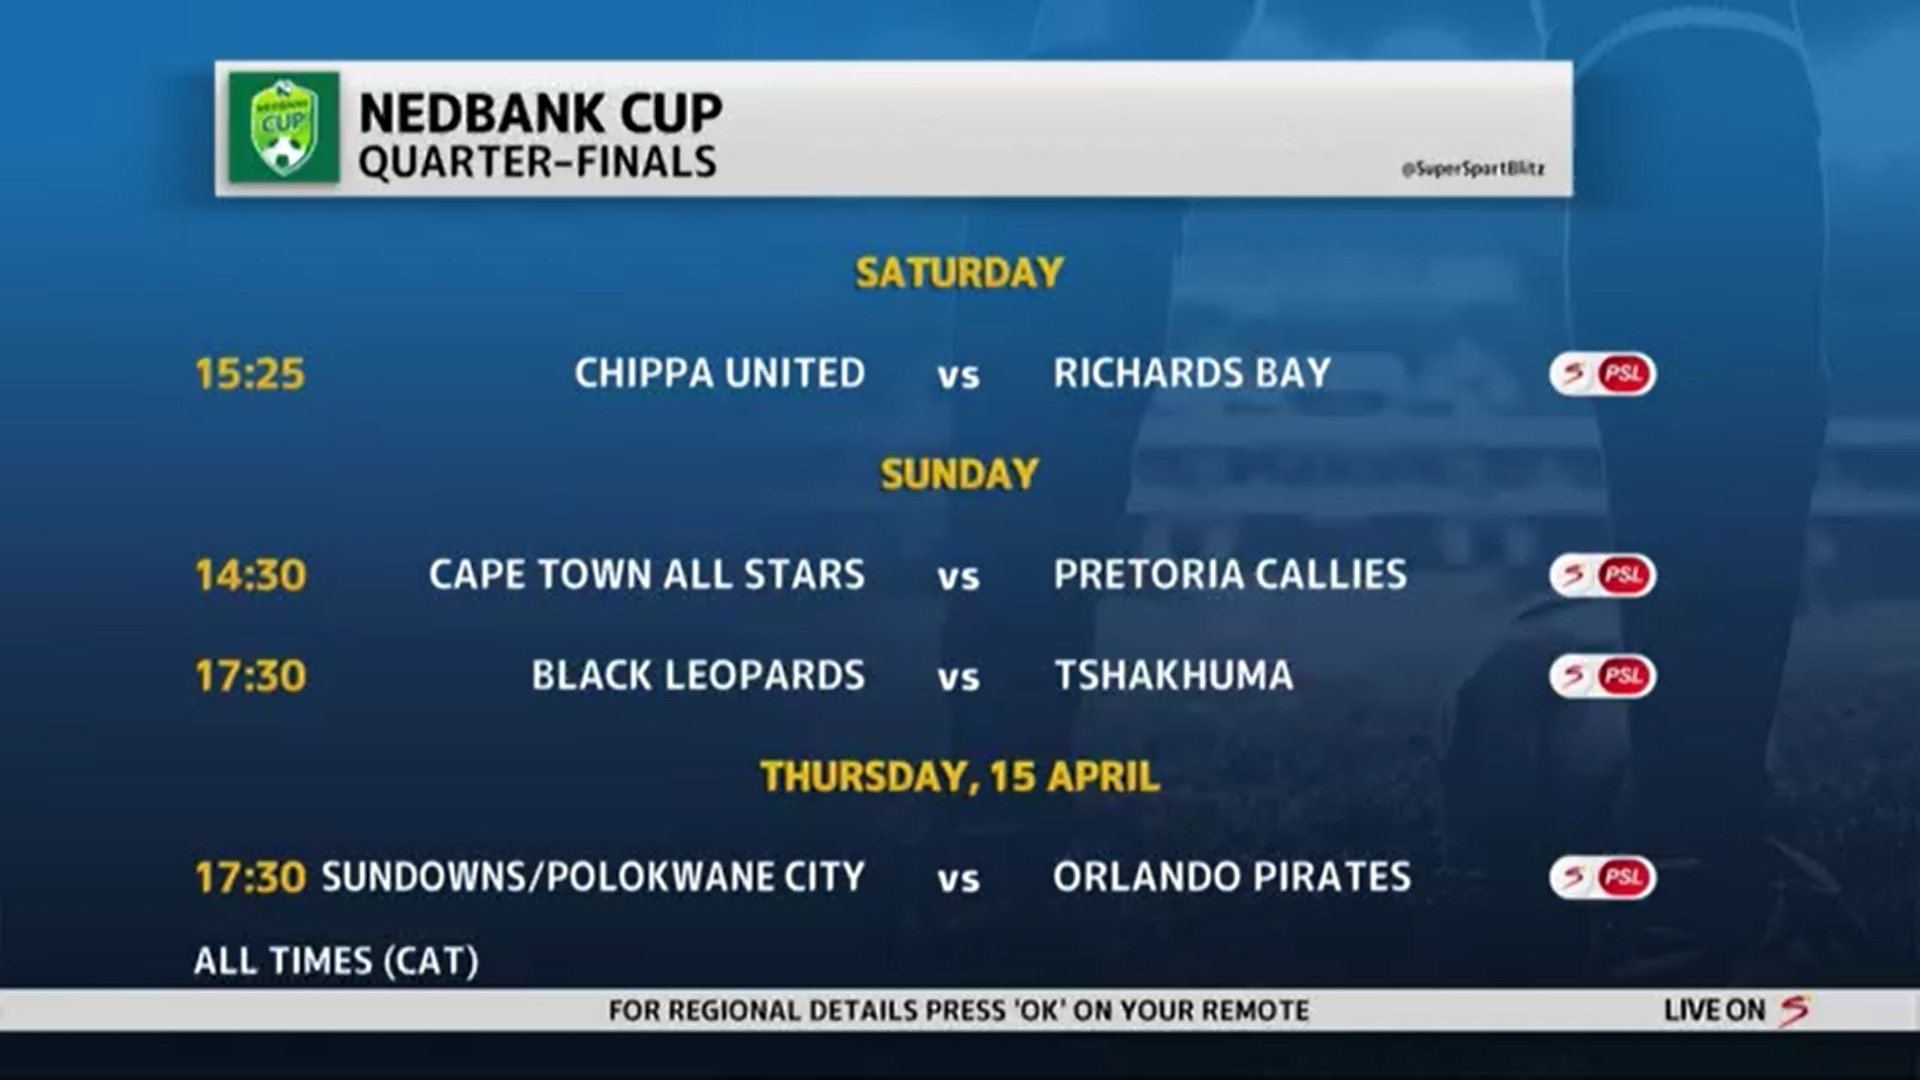 Nedbank Cup | Quarterfinals fixtures and dates announced